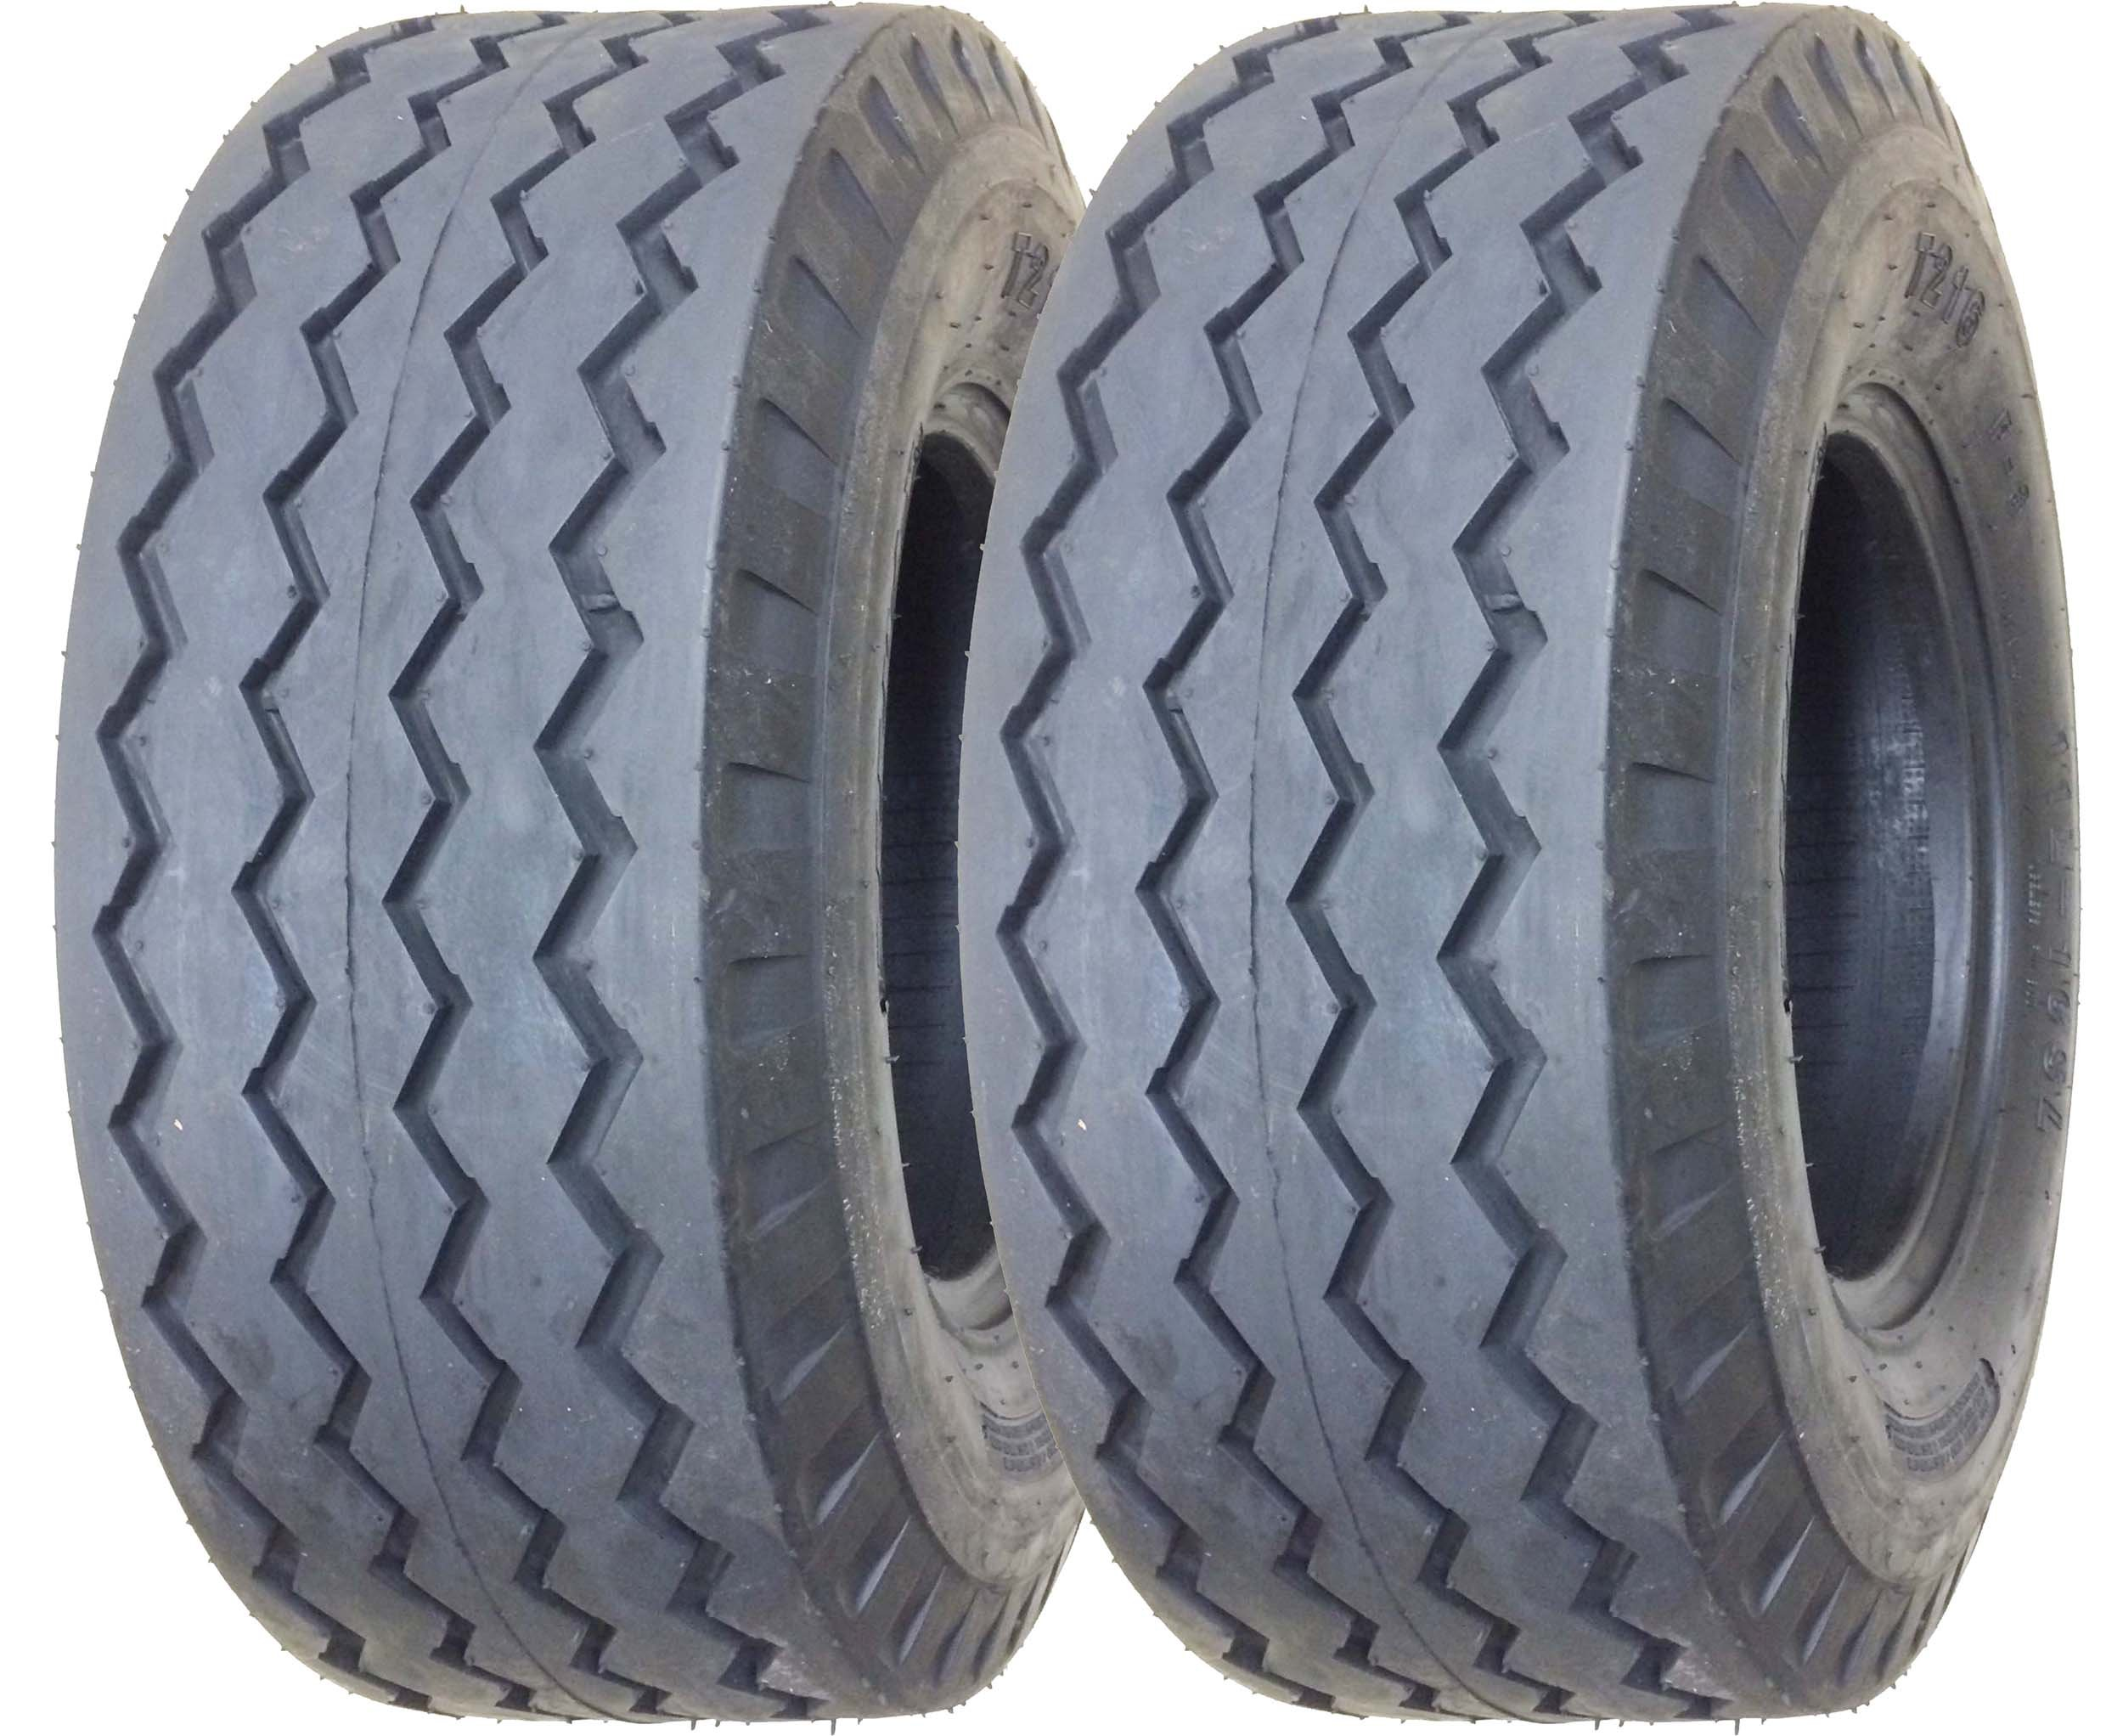 Set of 2 New ZEEMAX Heavy Duty 11L-16 Backhoe Implement Tires 12PR - 11069 by ZEEMAX (Image #1)